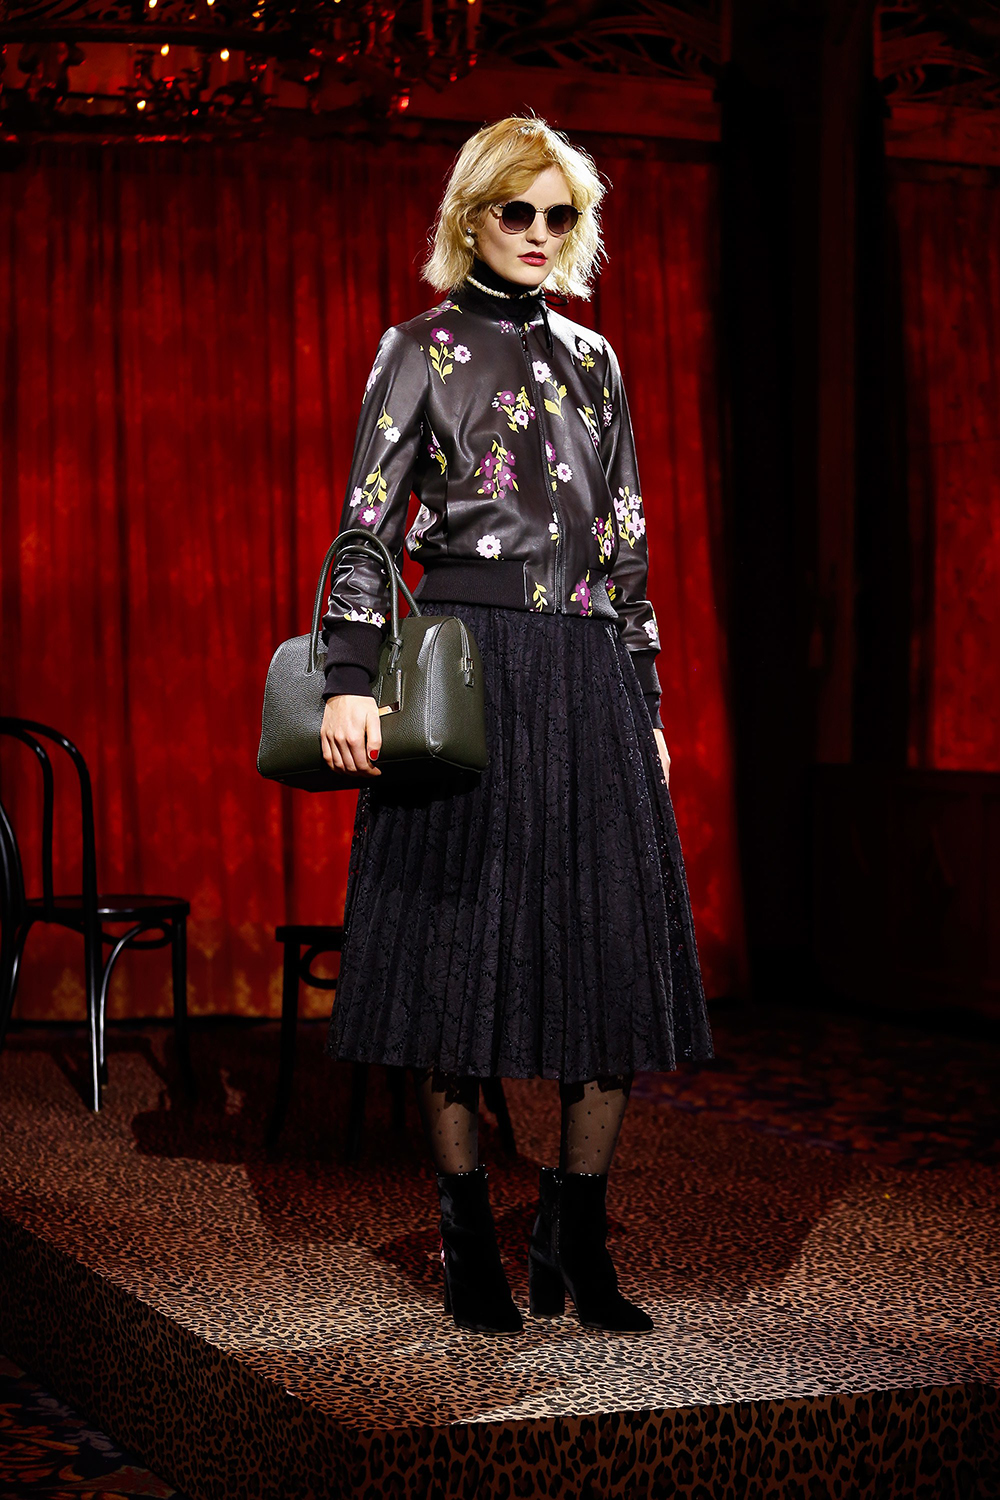 Today we are looking at Kate Spade's collection for Fall 2017. With the usual aplomb of saturated primaries, quirky patterns and retro infused silhouettes